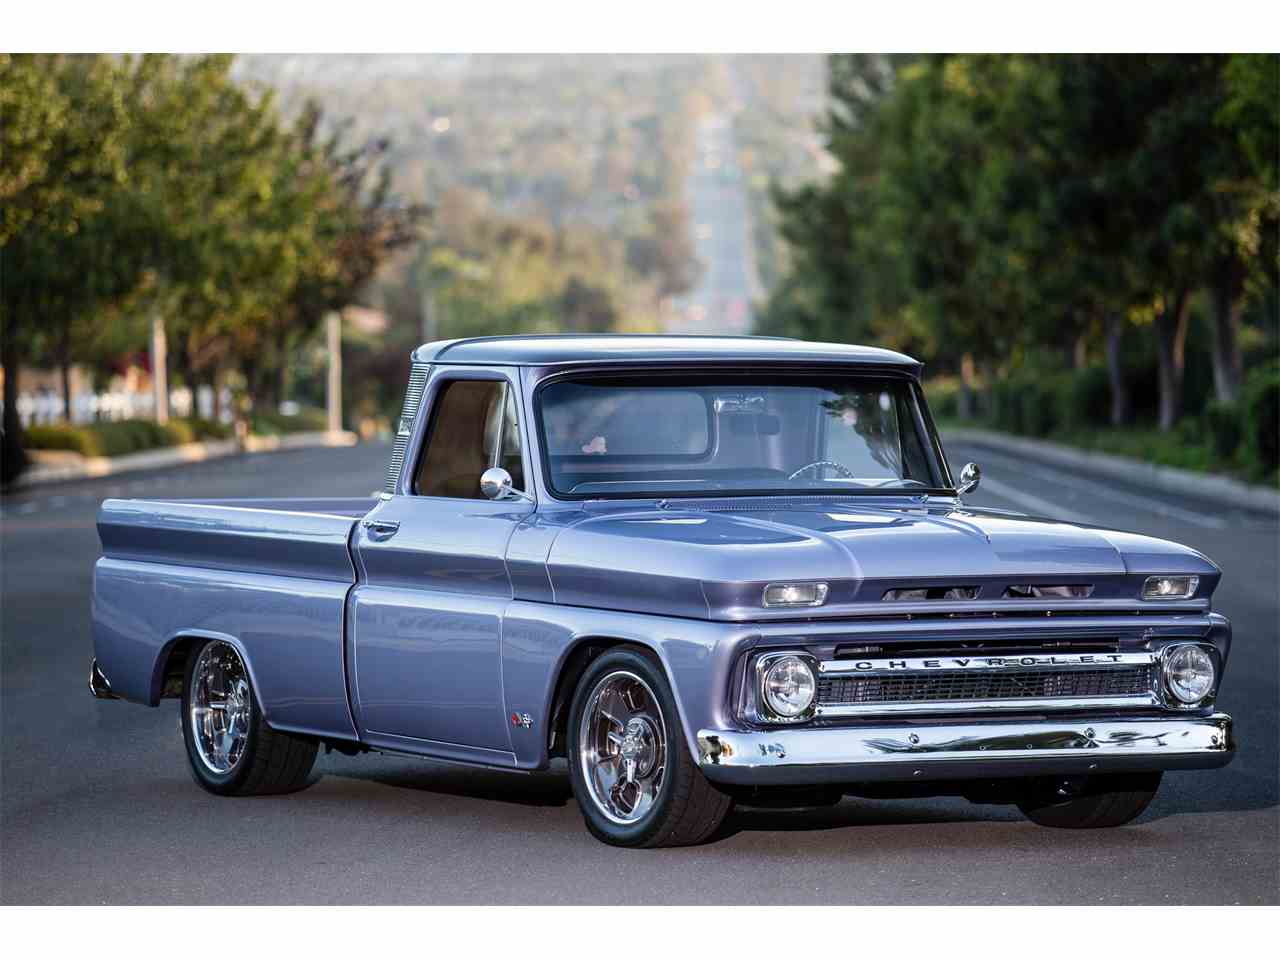 Truck 1965 chevrolet truck : 1963 to 1965 Chevrolet C10 for Sale on ClassicCars.com